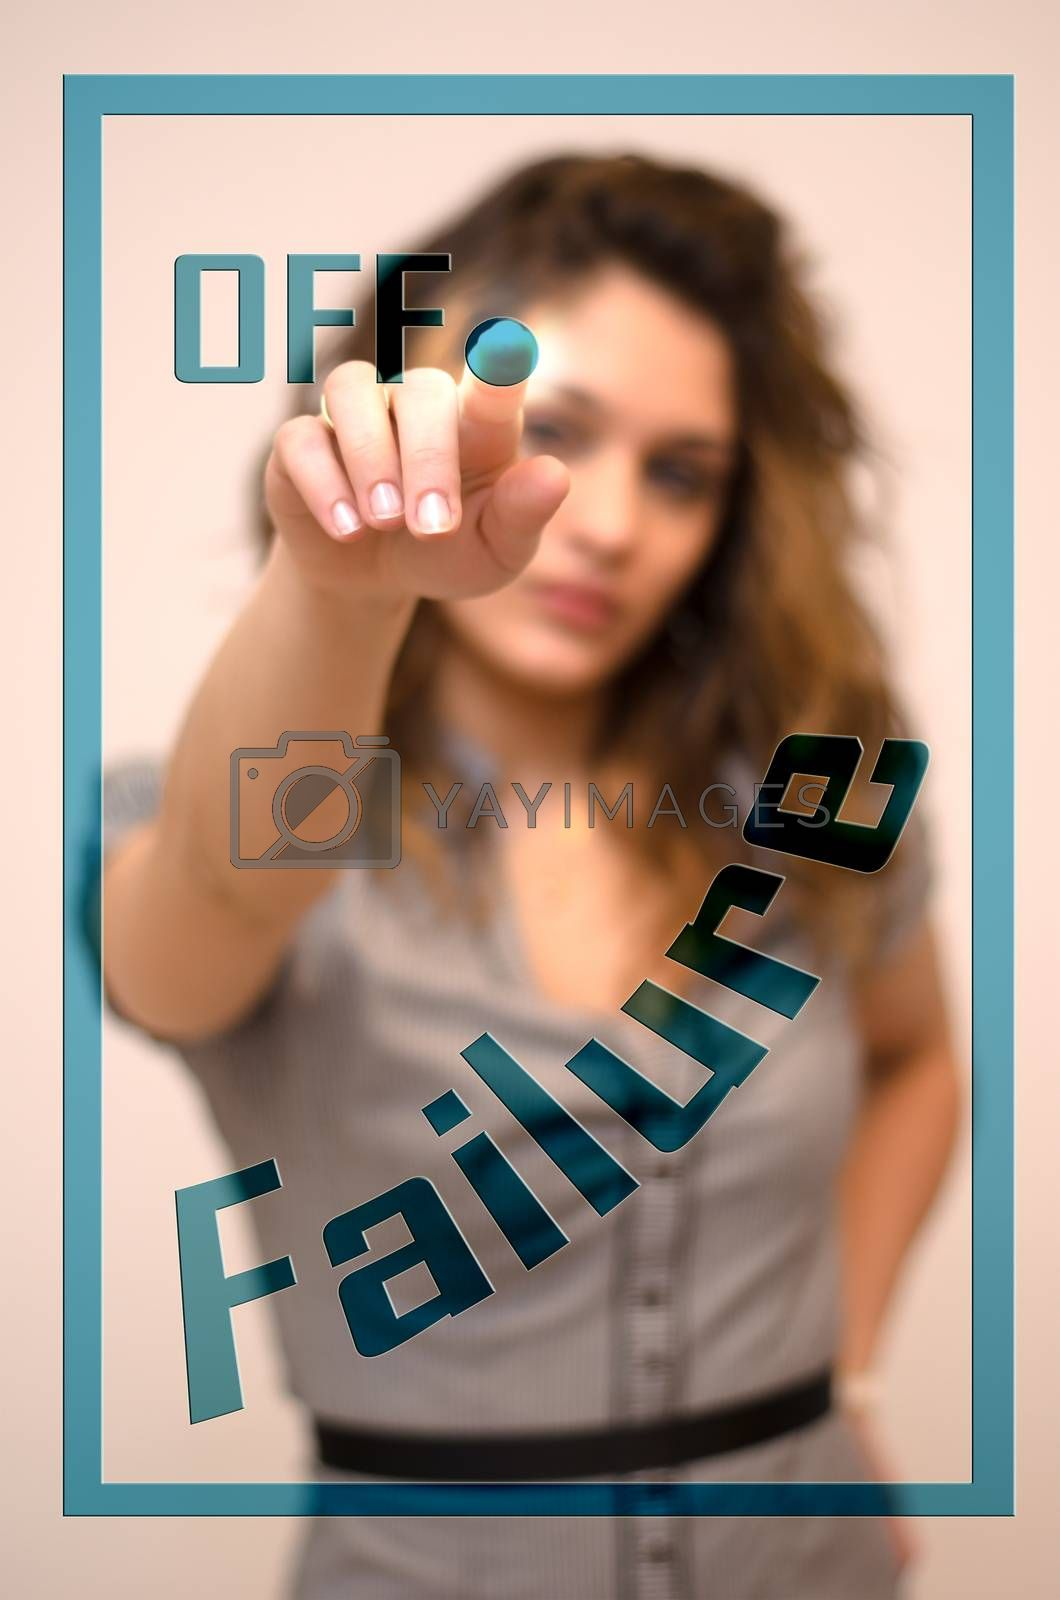 young woman turning off Failure on digital panel